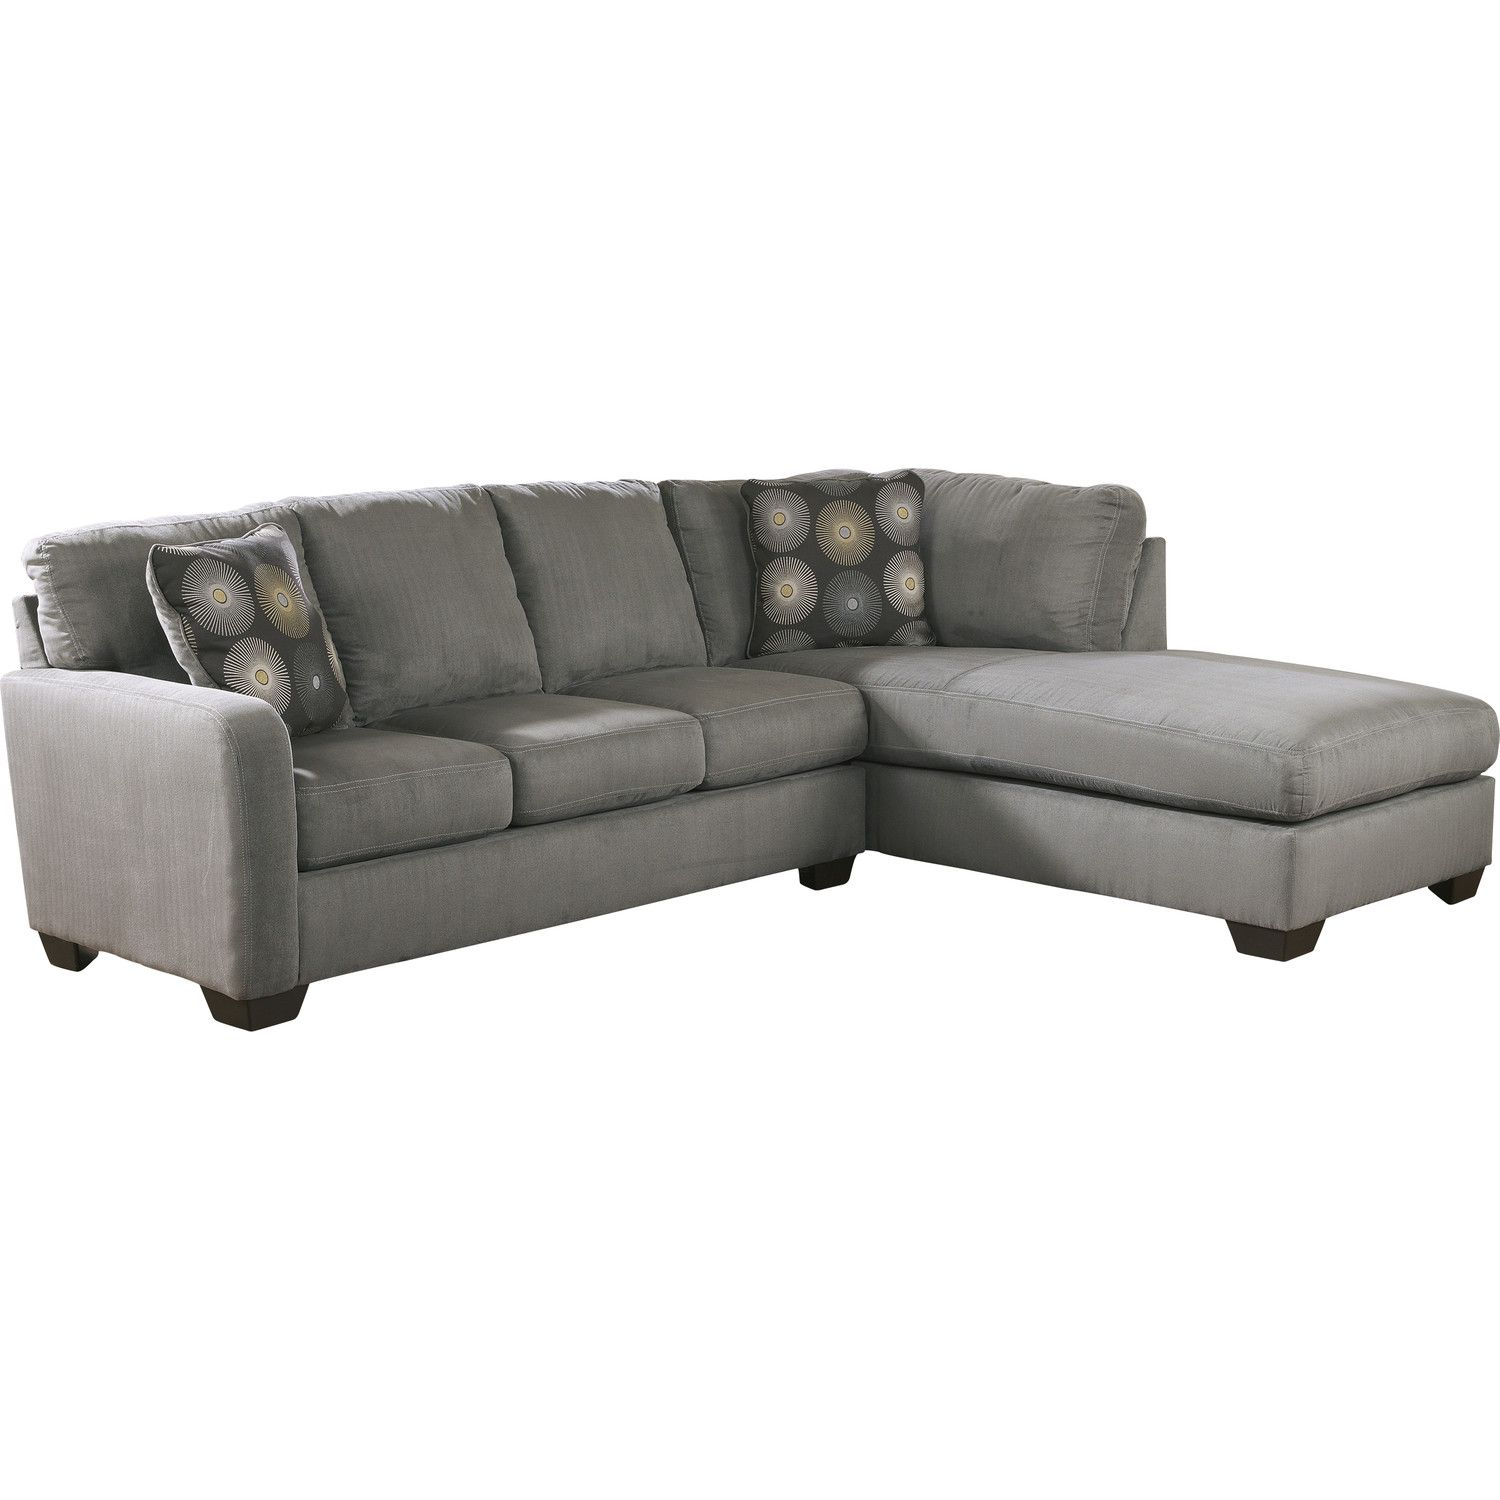 Signature Design By Ashley Waverly Sofa Reviews Wayfair